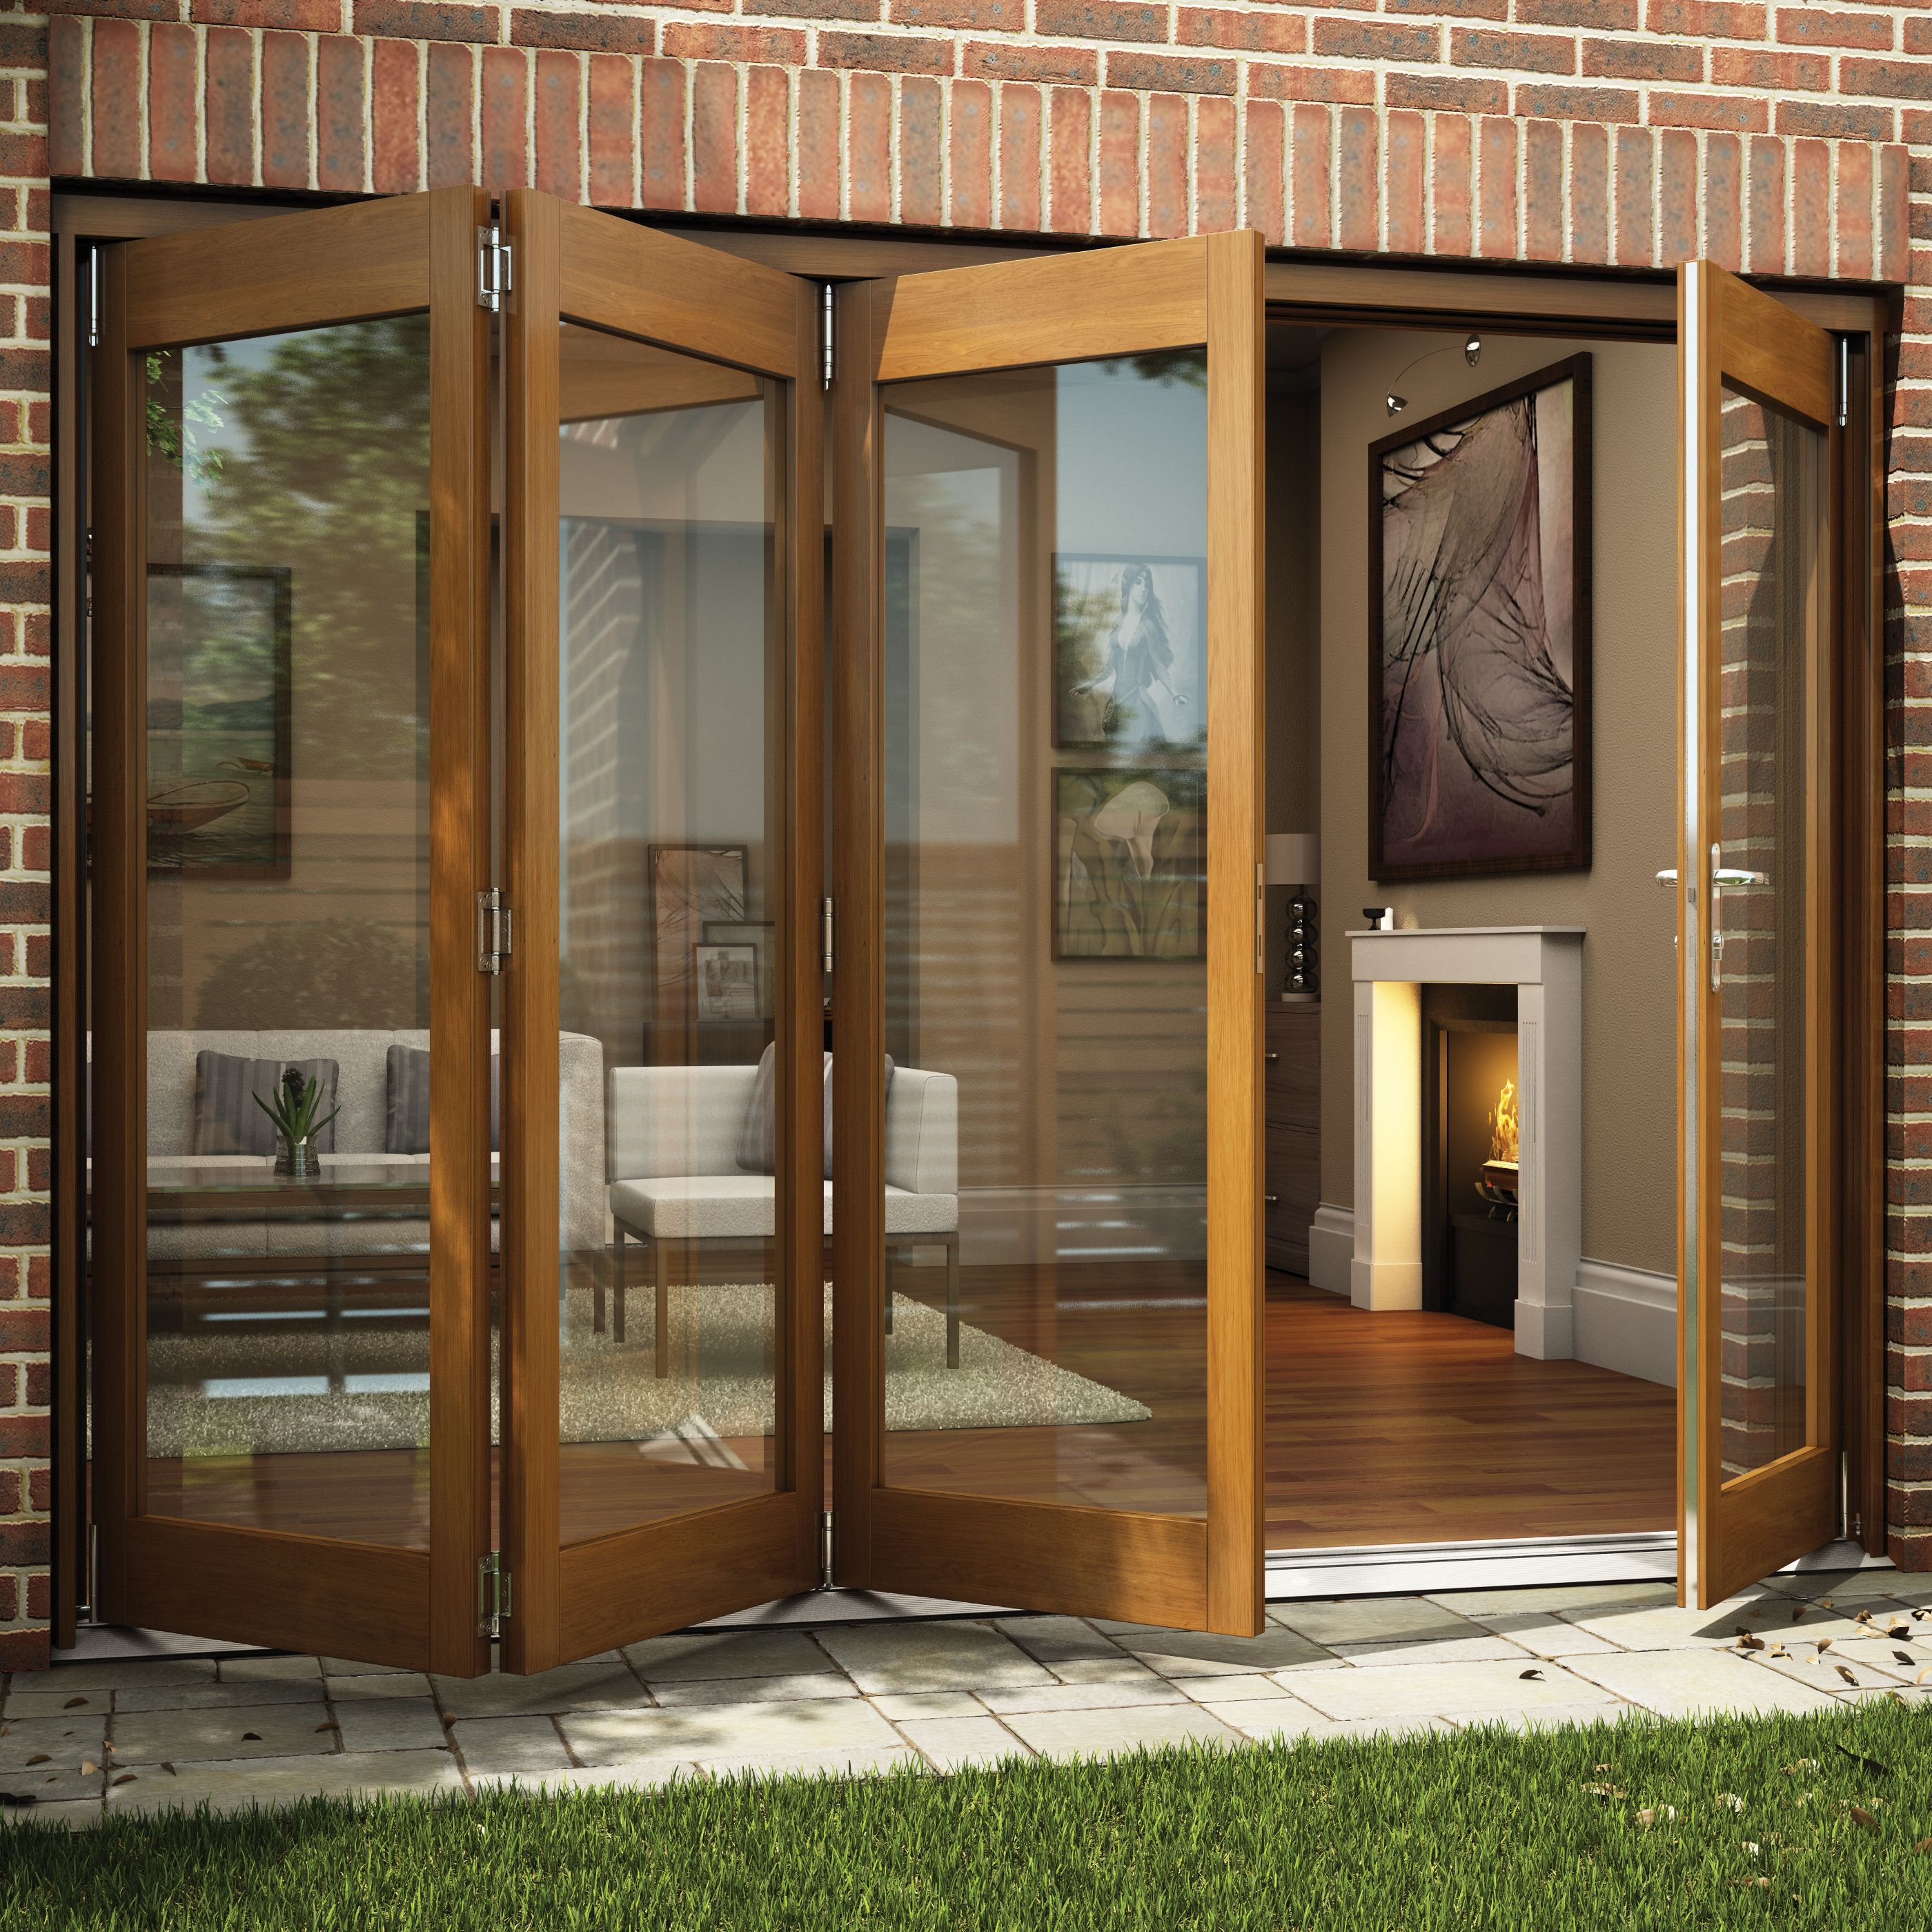 Diy Patio Door Installation: Oak Veneer Glazed Patio Patio Door, (H)2105mm (W)3005mm